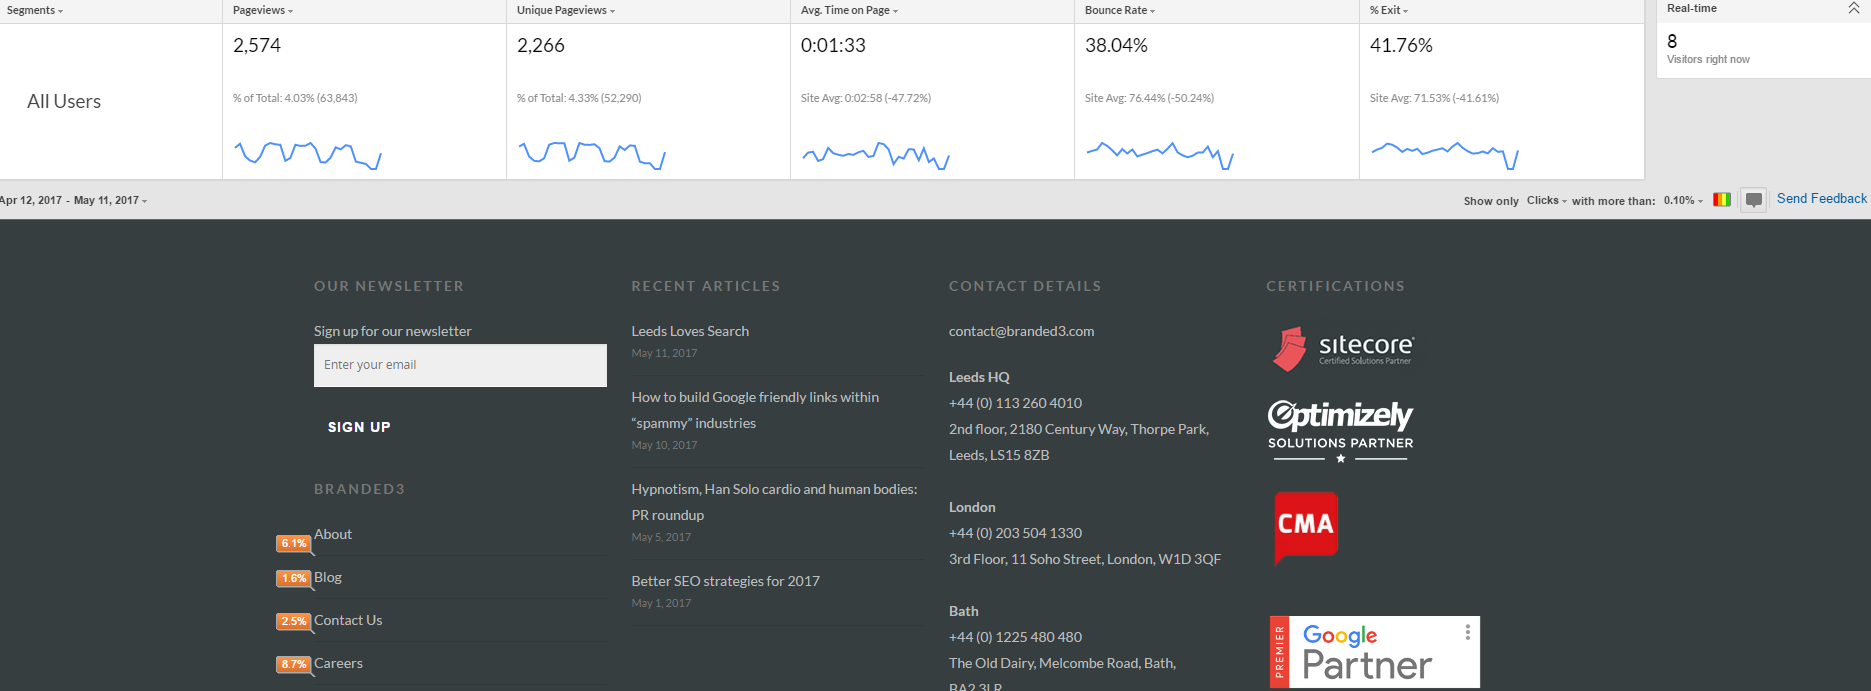 Branded3 Page Analytics Google Plugin Chrome